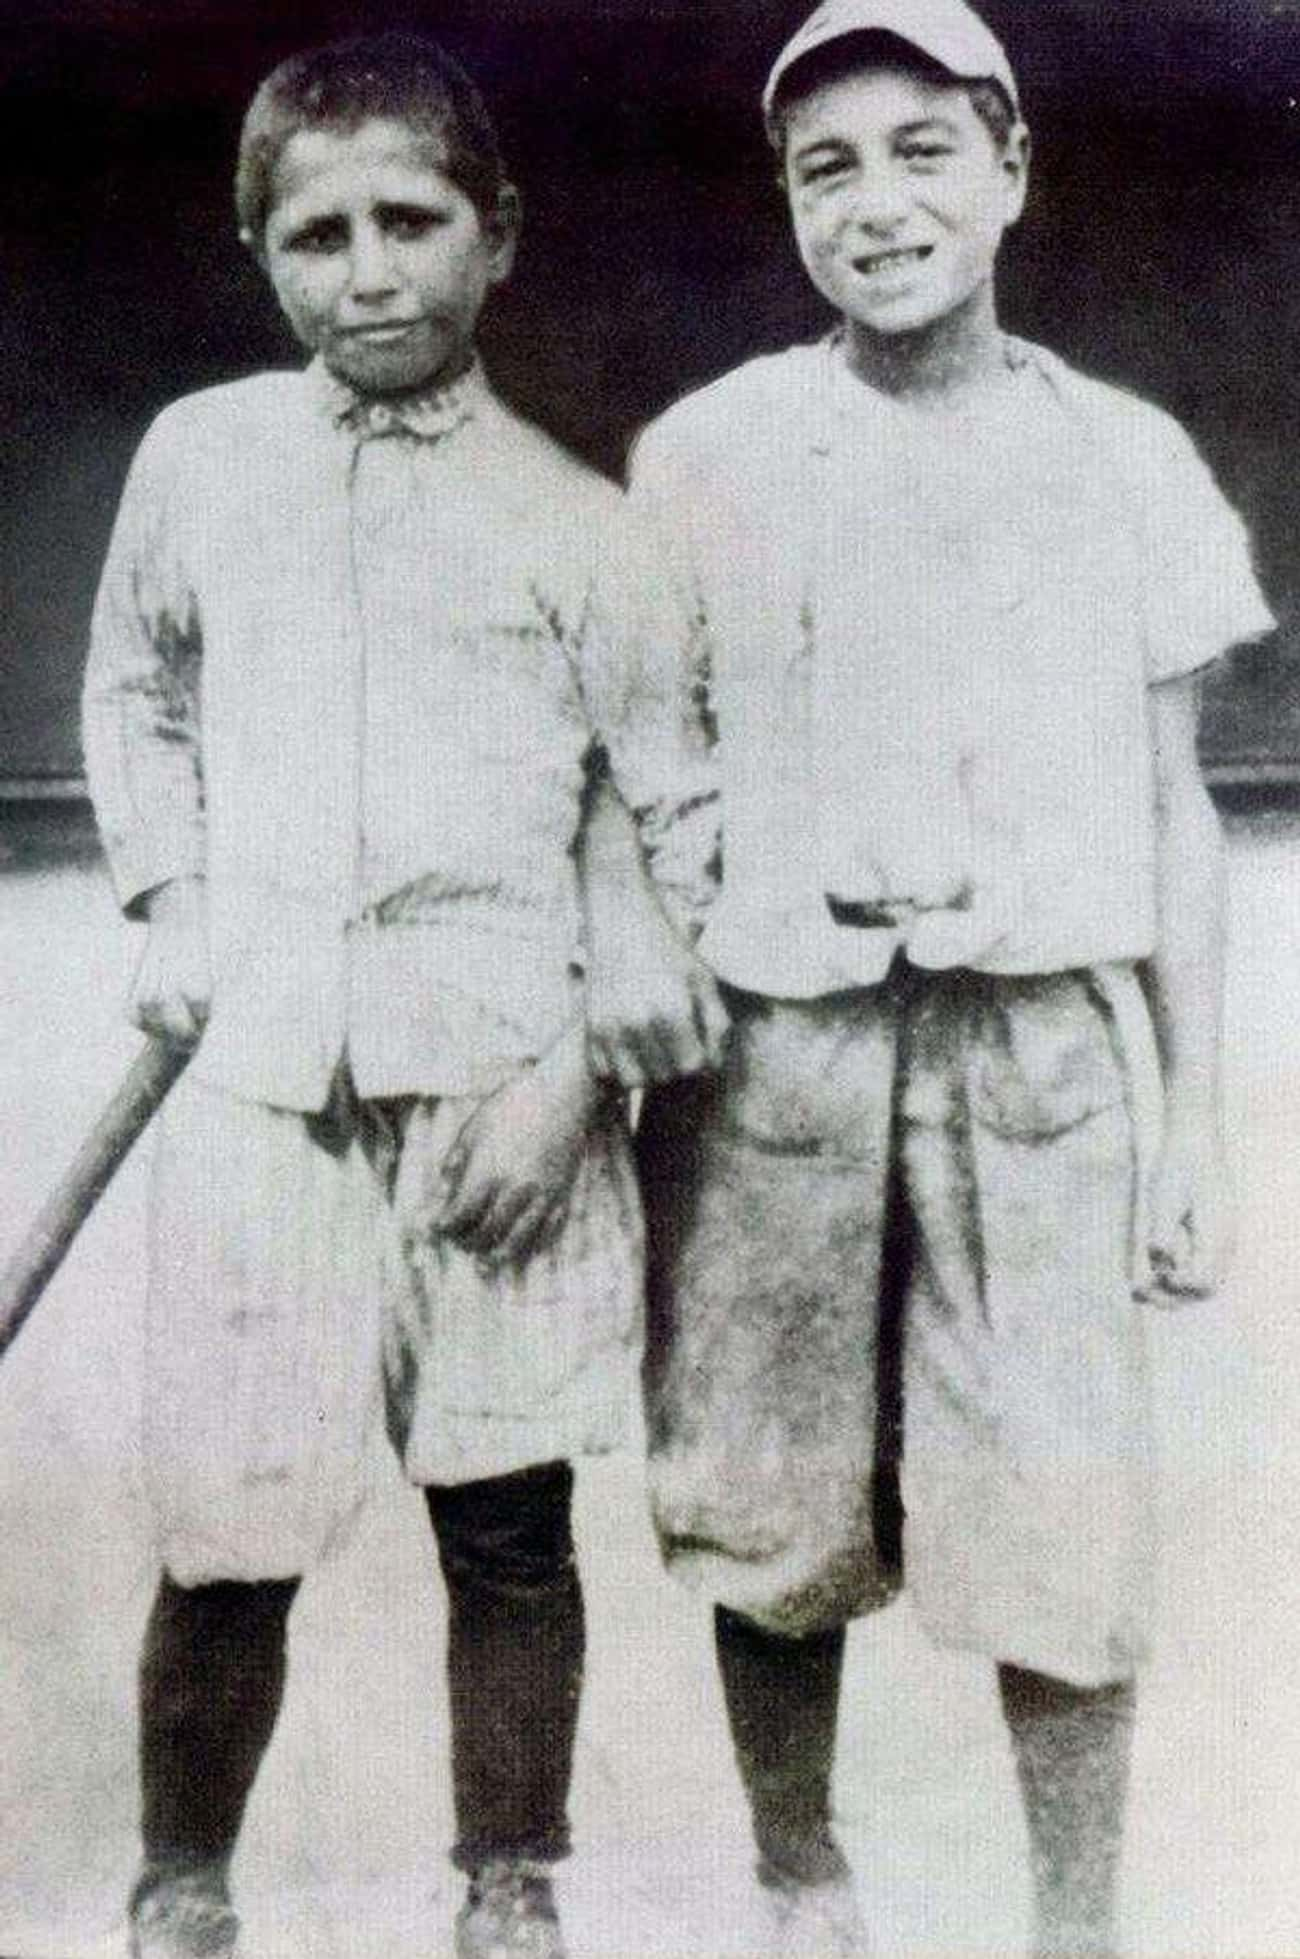 Babe Ruth (On Right) - 7 Years Old, 1902